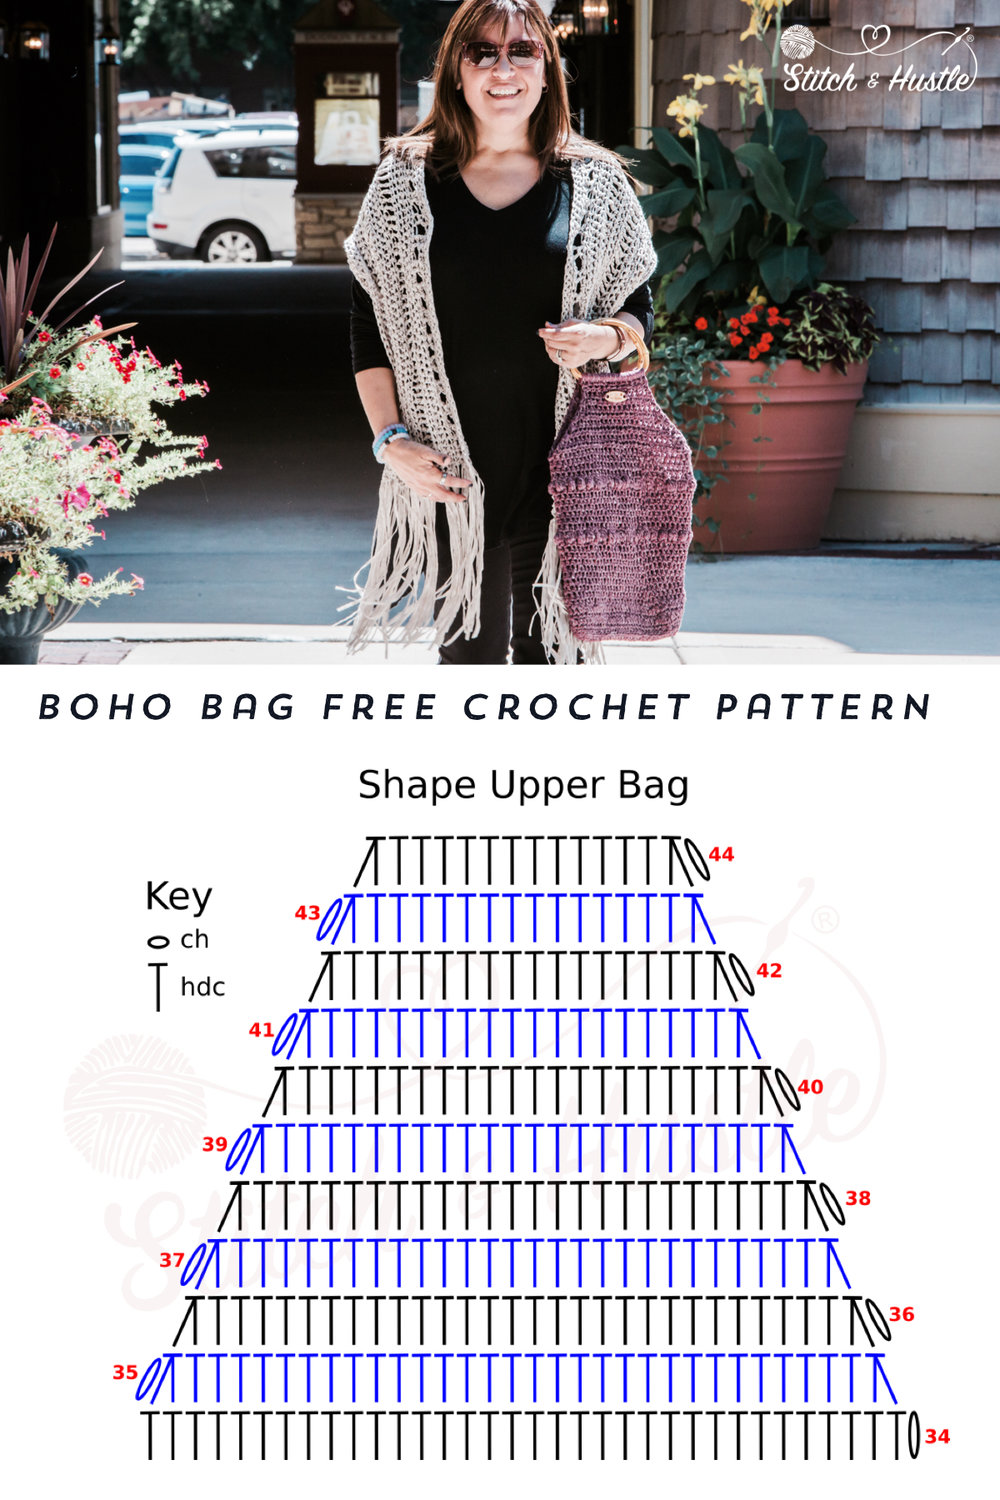 Downtown_Crochet_Bag_Free_pattern_1.jpg